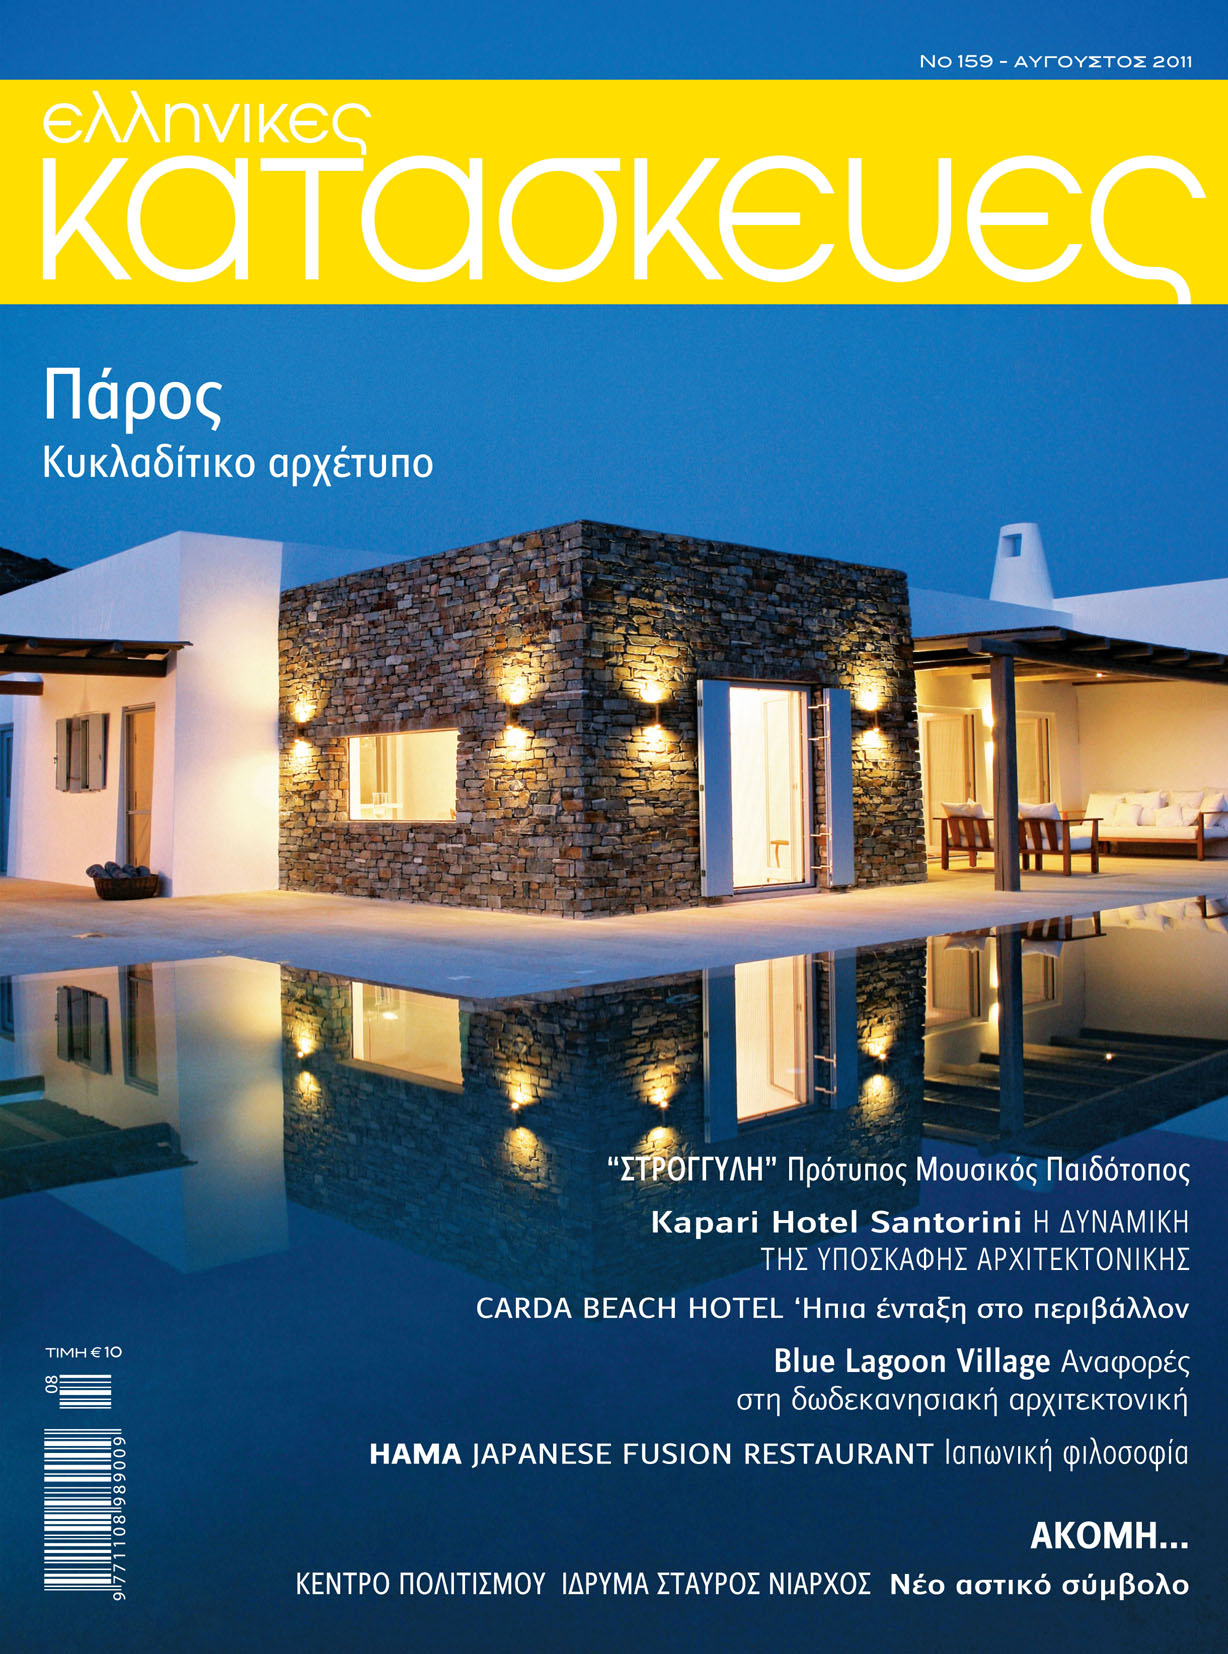 PATMOS AKTIS  &  CARDA BEACH    EK MAGAZINE VOL 159 /AUG 2011